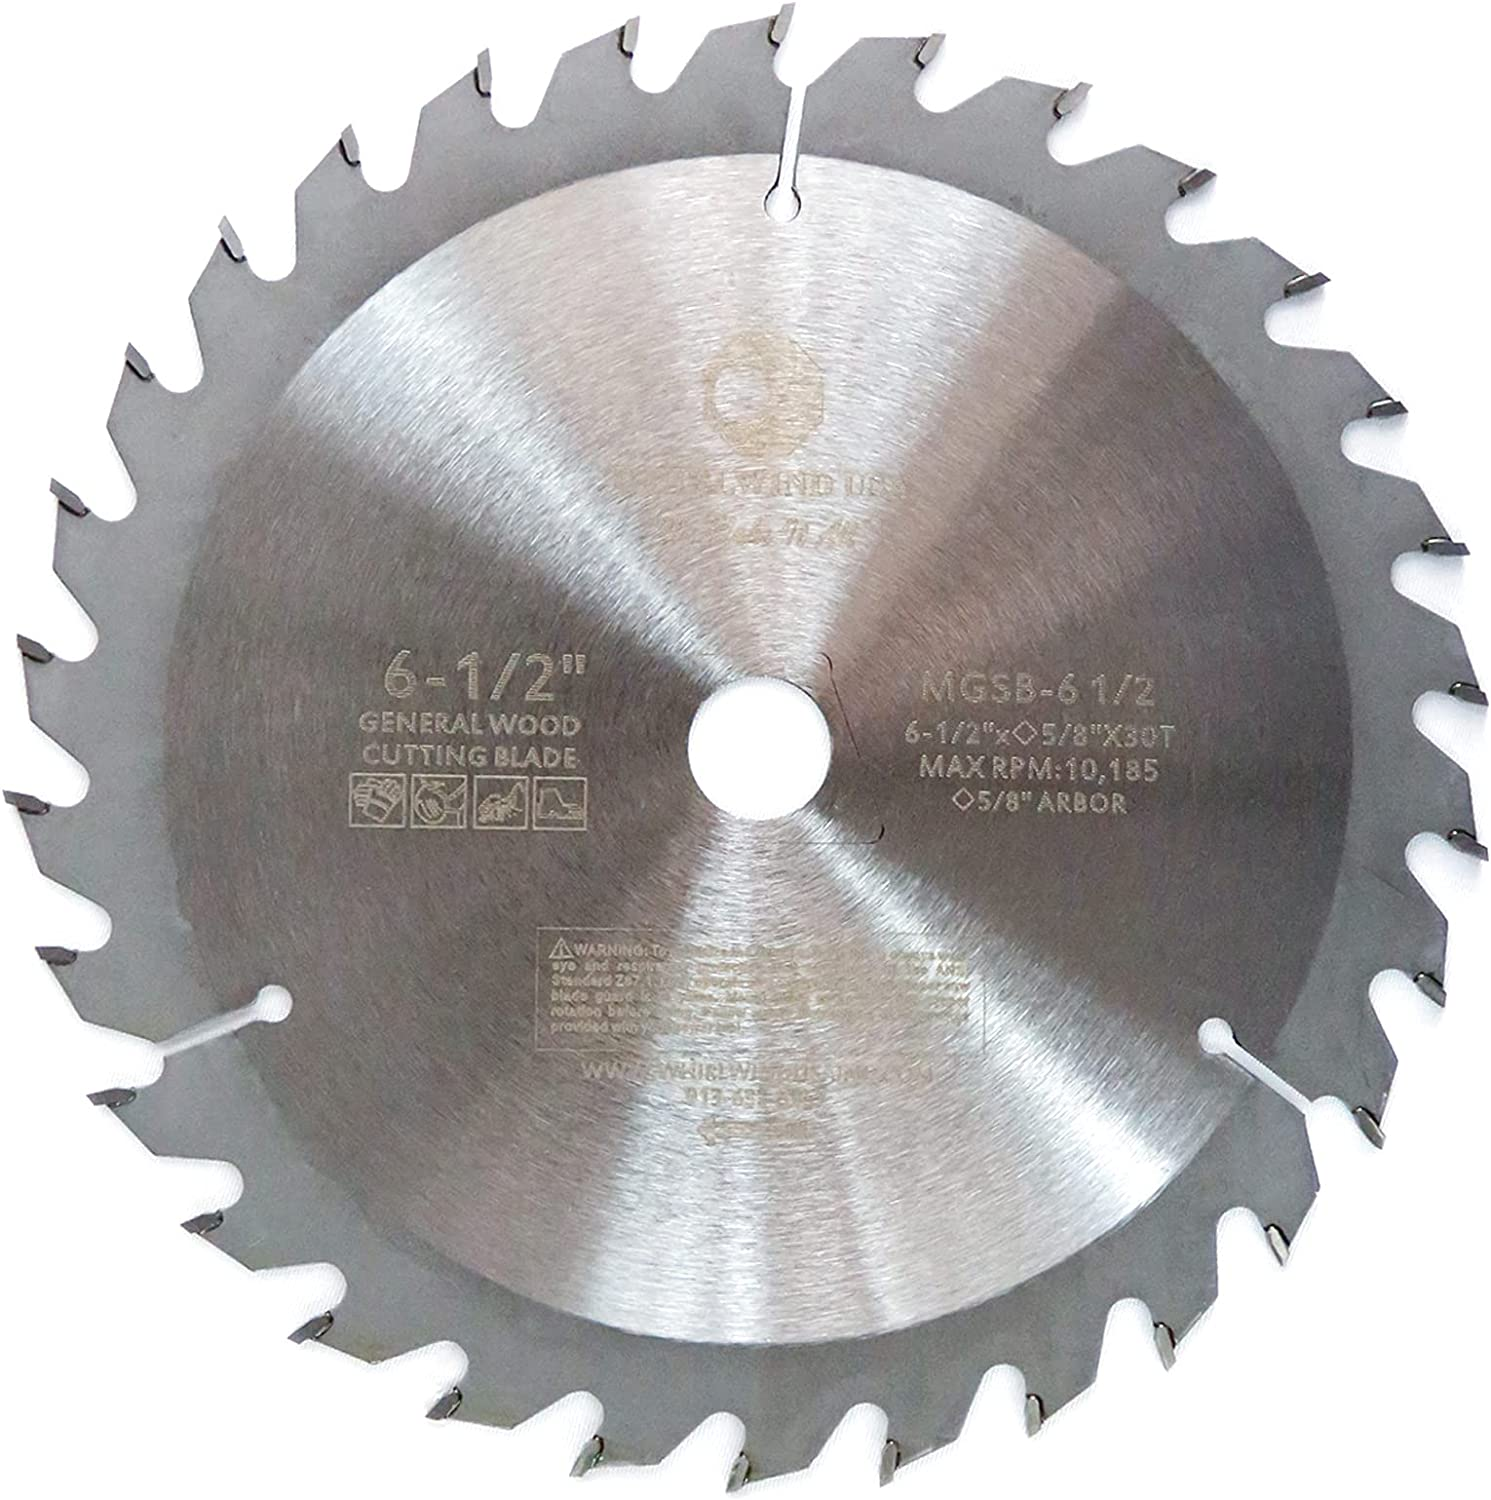 Carbide-Tipped Circular trust Complete Free Shipping Saw Blade 6-1 DIY 2 Purpos inch General